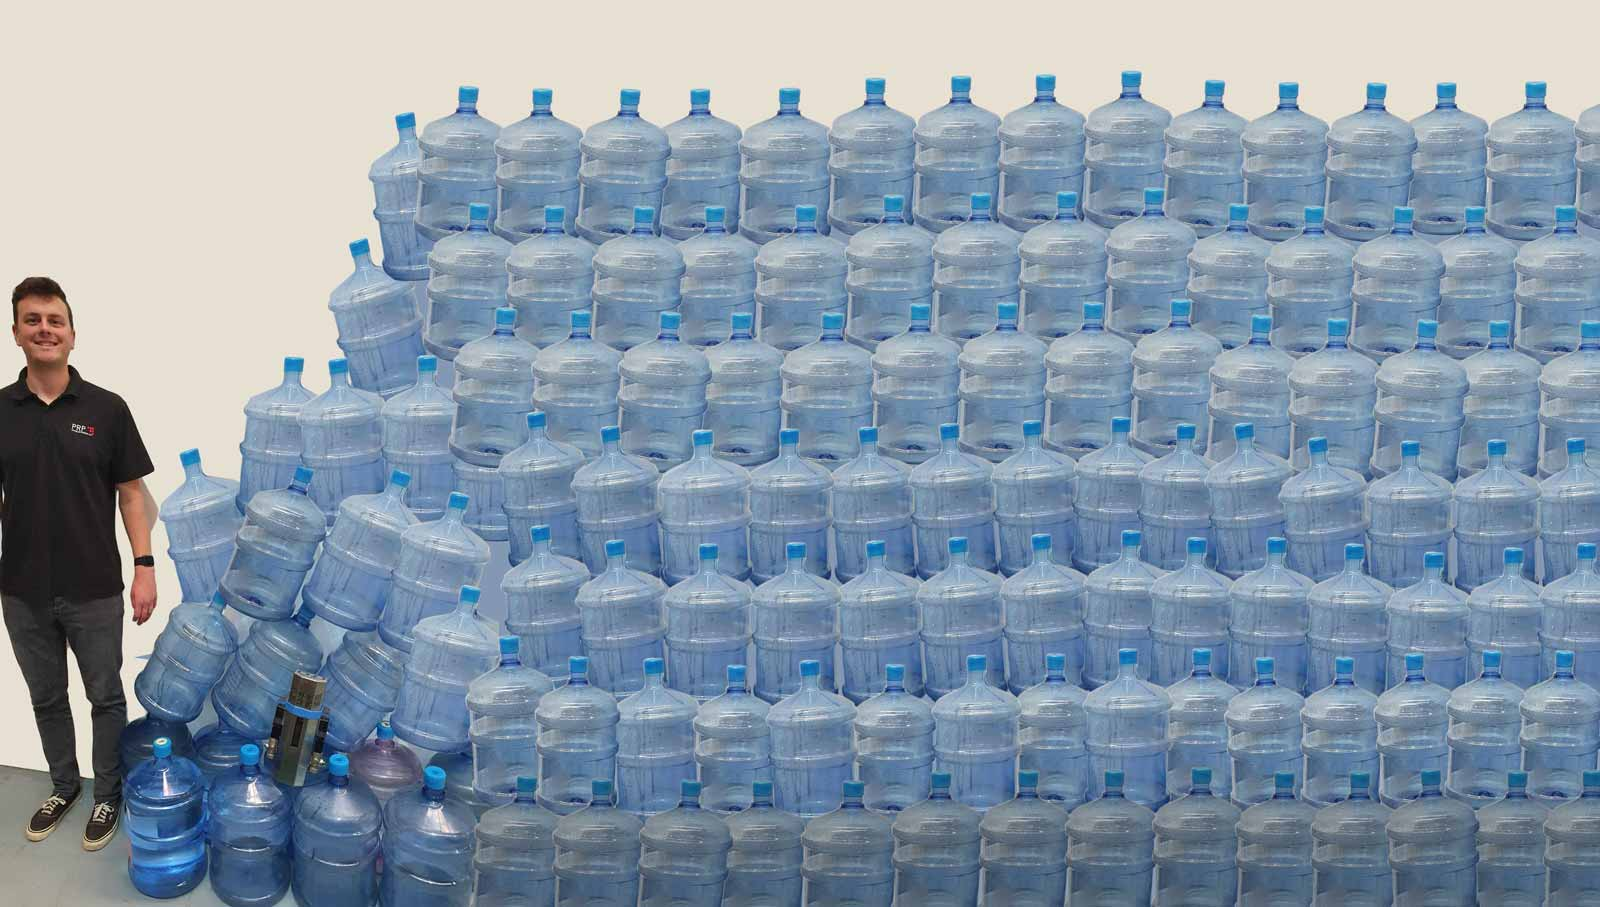 A visual showing the number of plastic water bottles used by PRP in a year